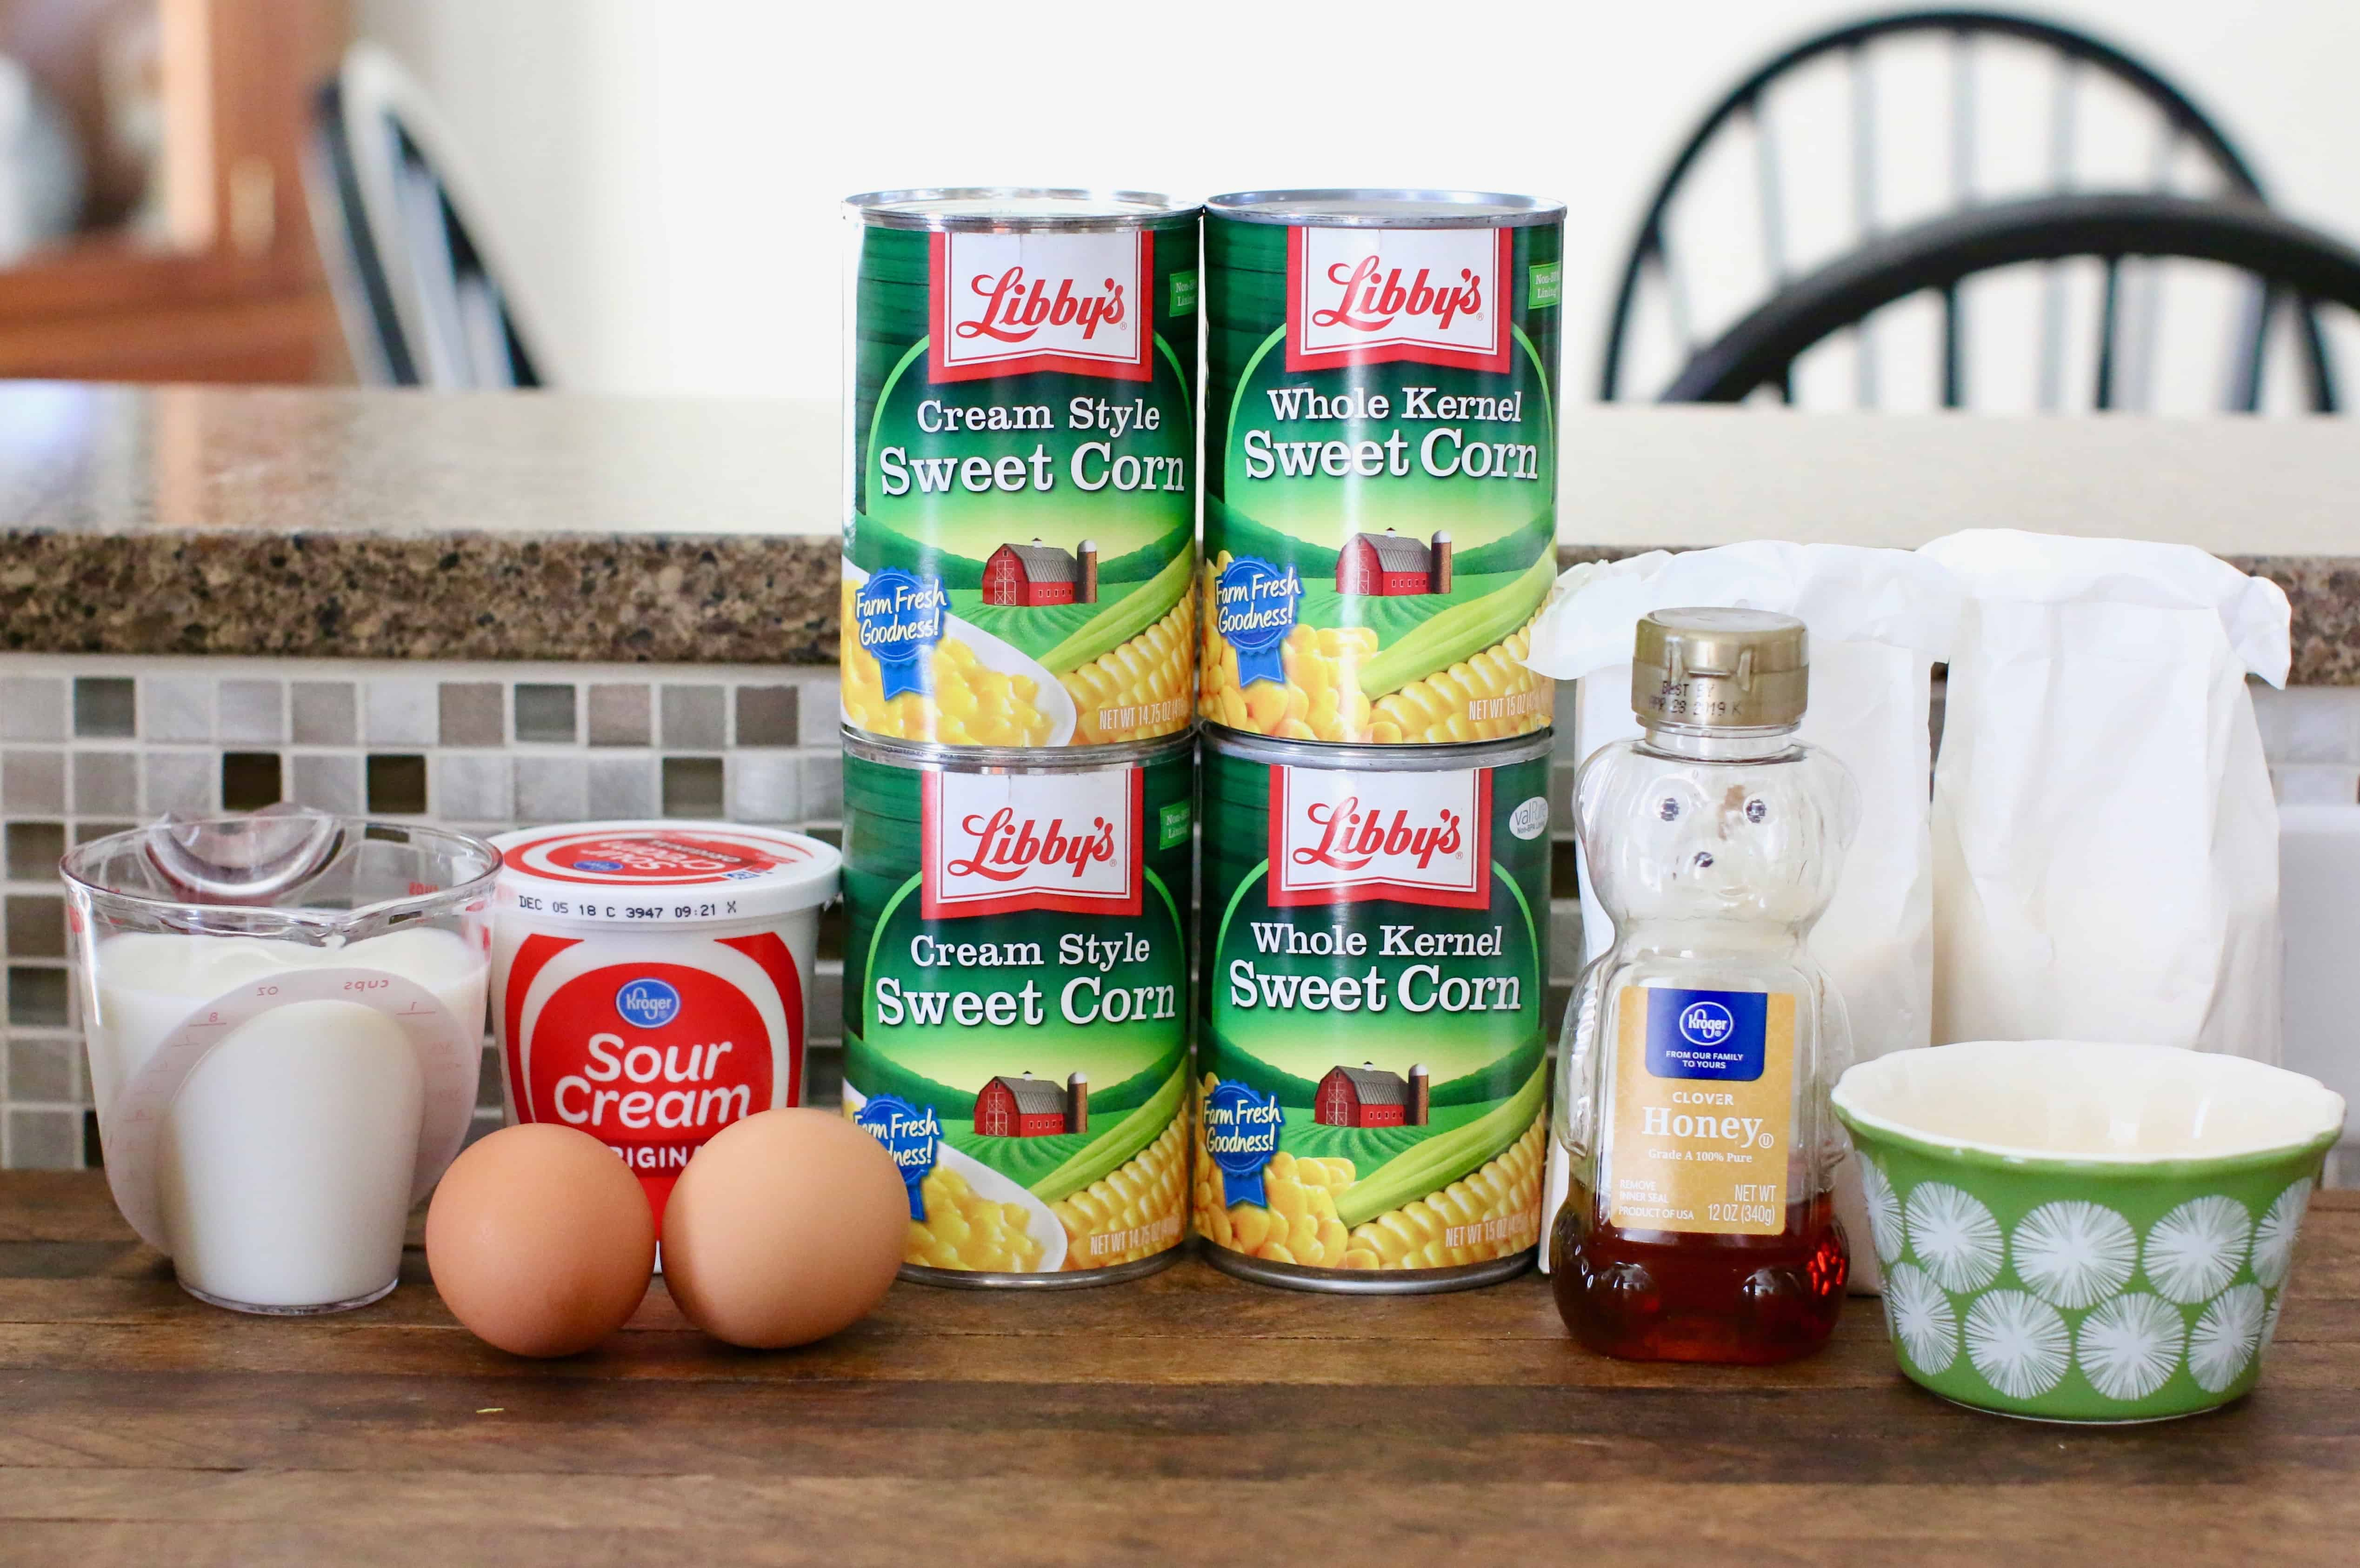 canned corn, canned cream corn, jiffy corn muffin mix, eggs, sour cream, melted butter, milk, honey